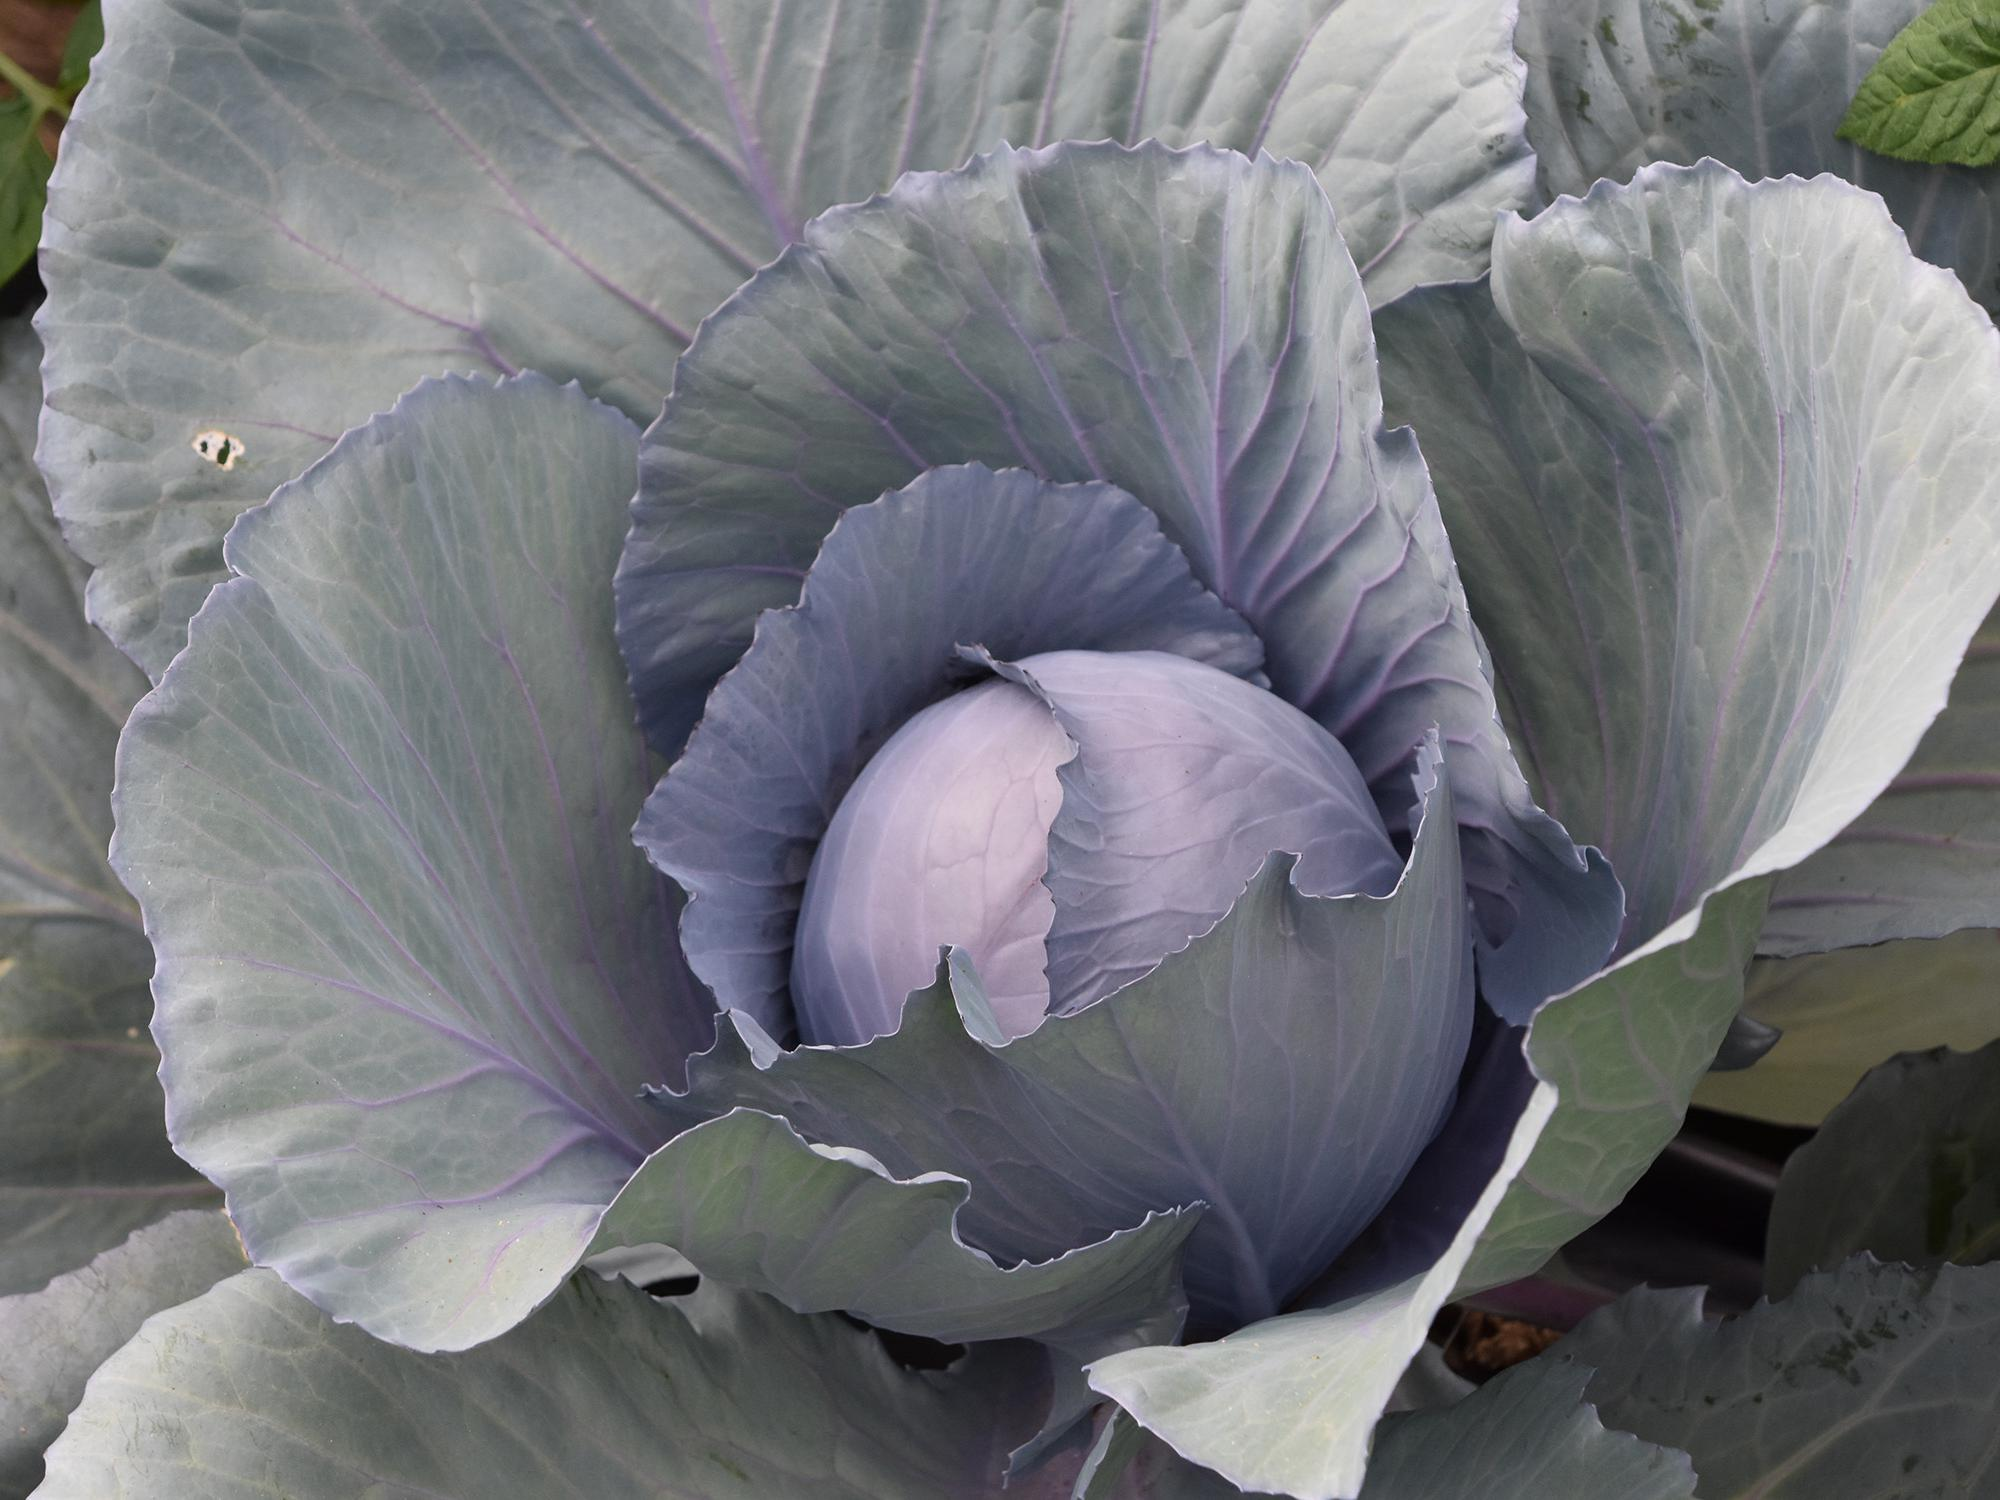 A head of cabbage grows in the center of a gorgeous red cabbage plant.